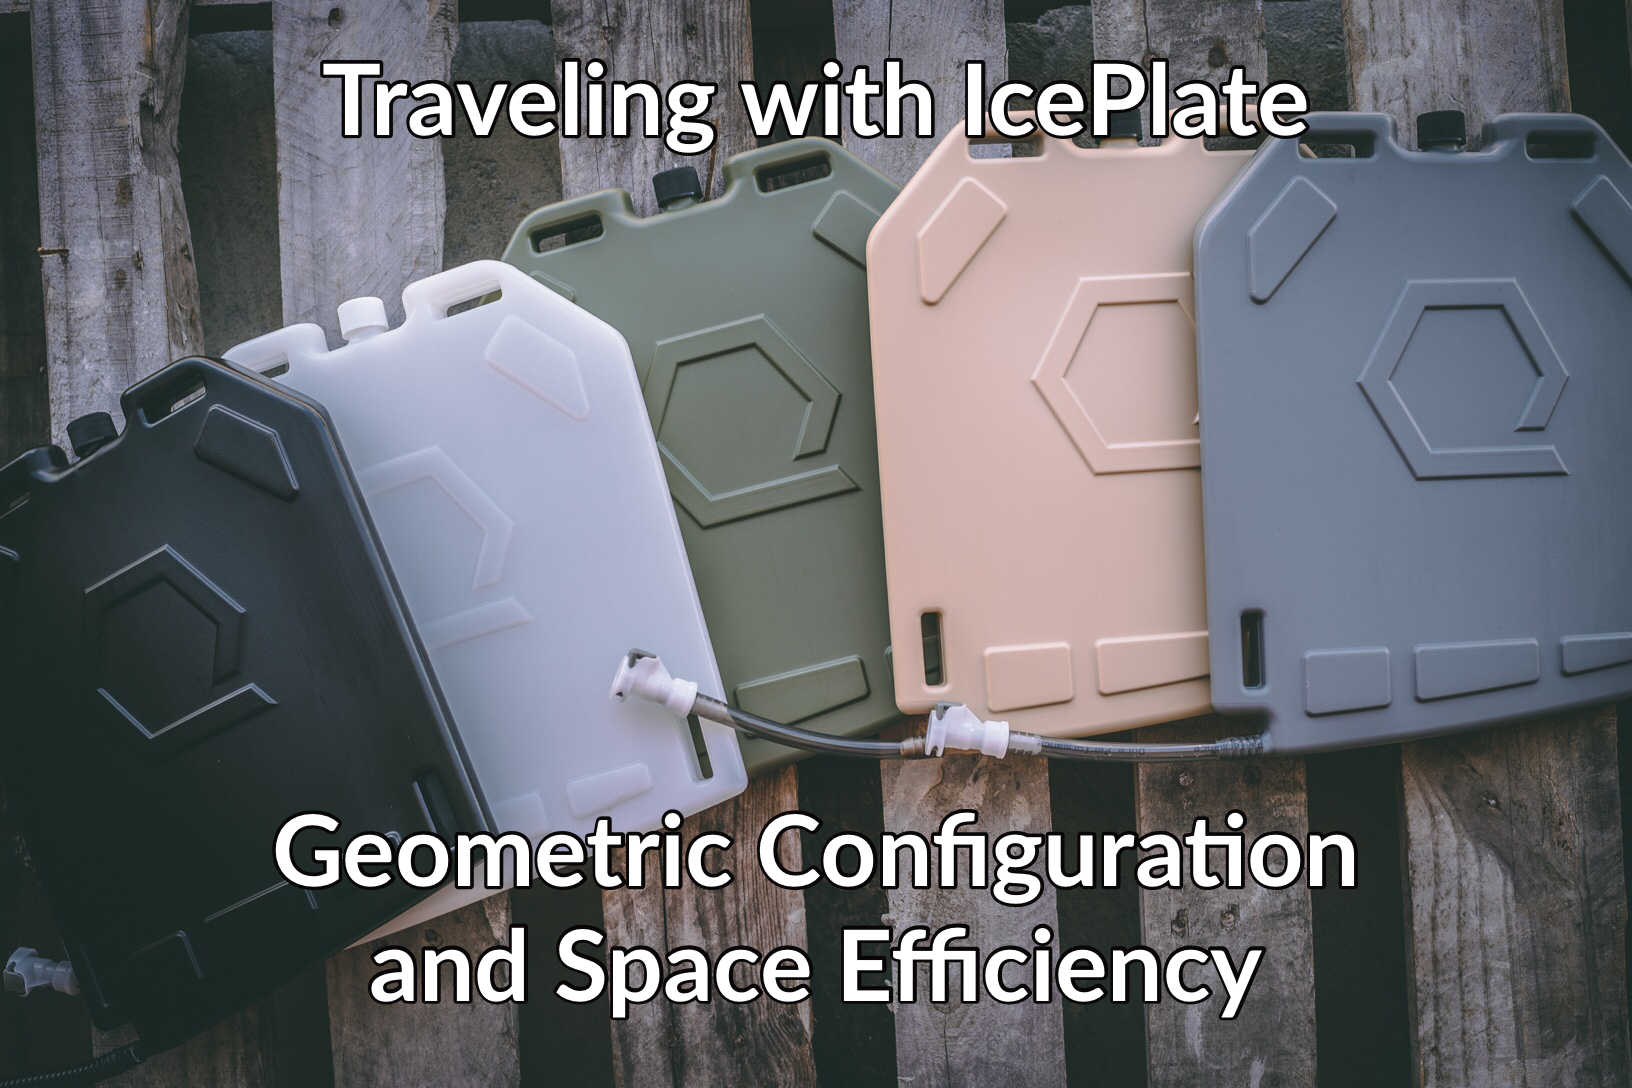 Traveling with IcePlate: Geometric Configuration and Space Efficiency